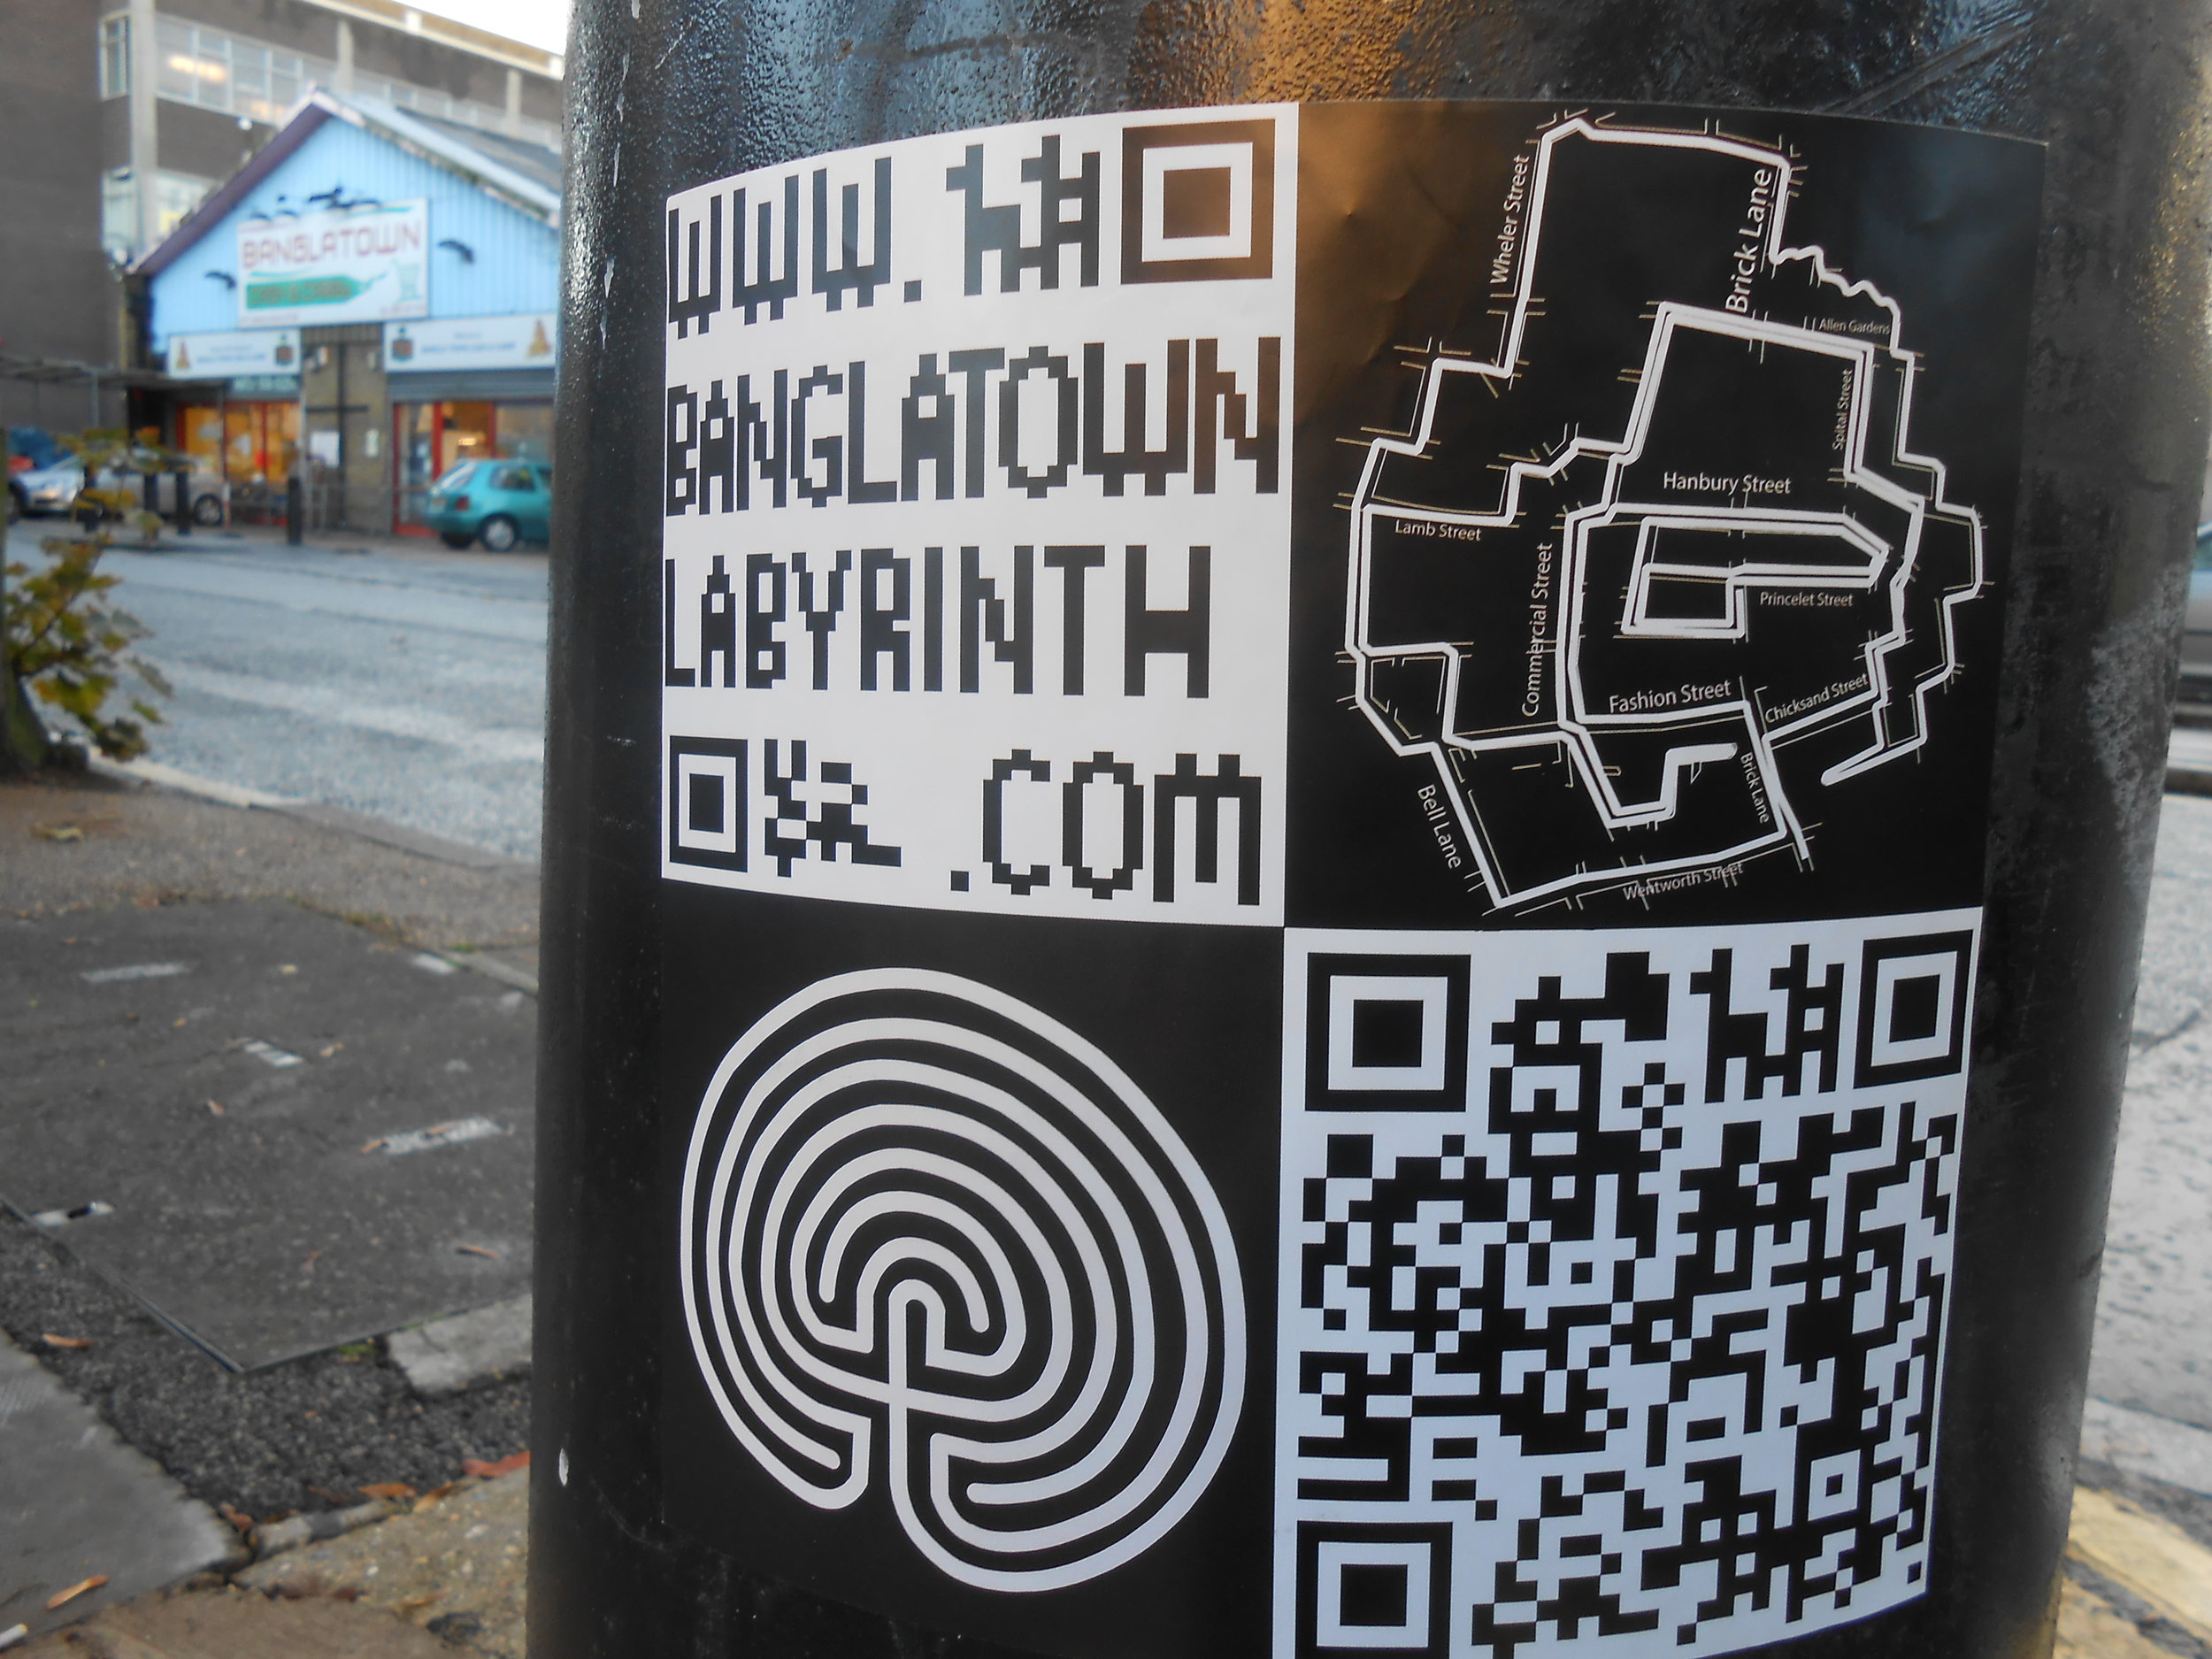 Stickers were placed on every possible surface along the Bang;atown Labyrinth route.